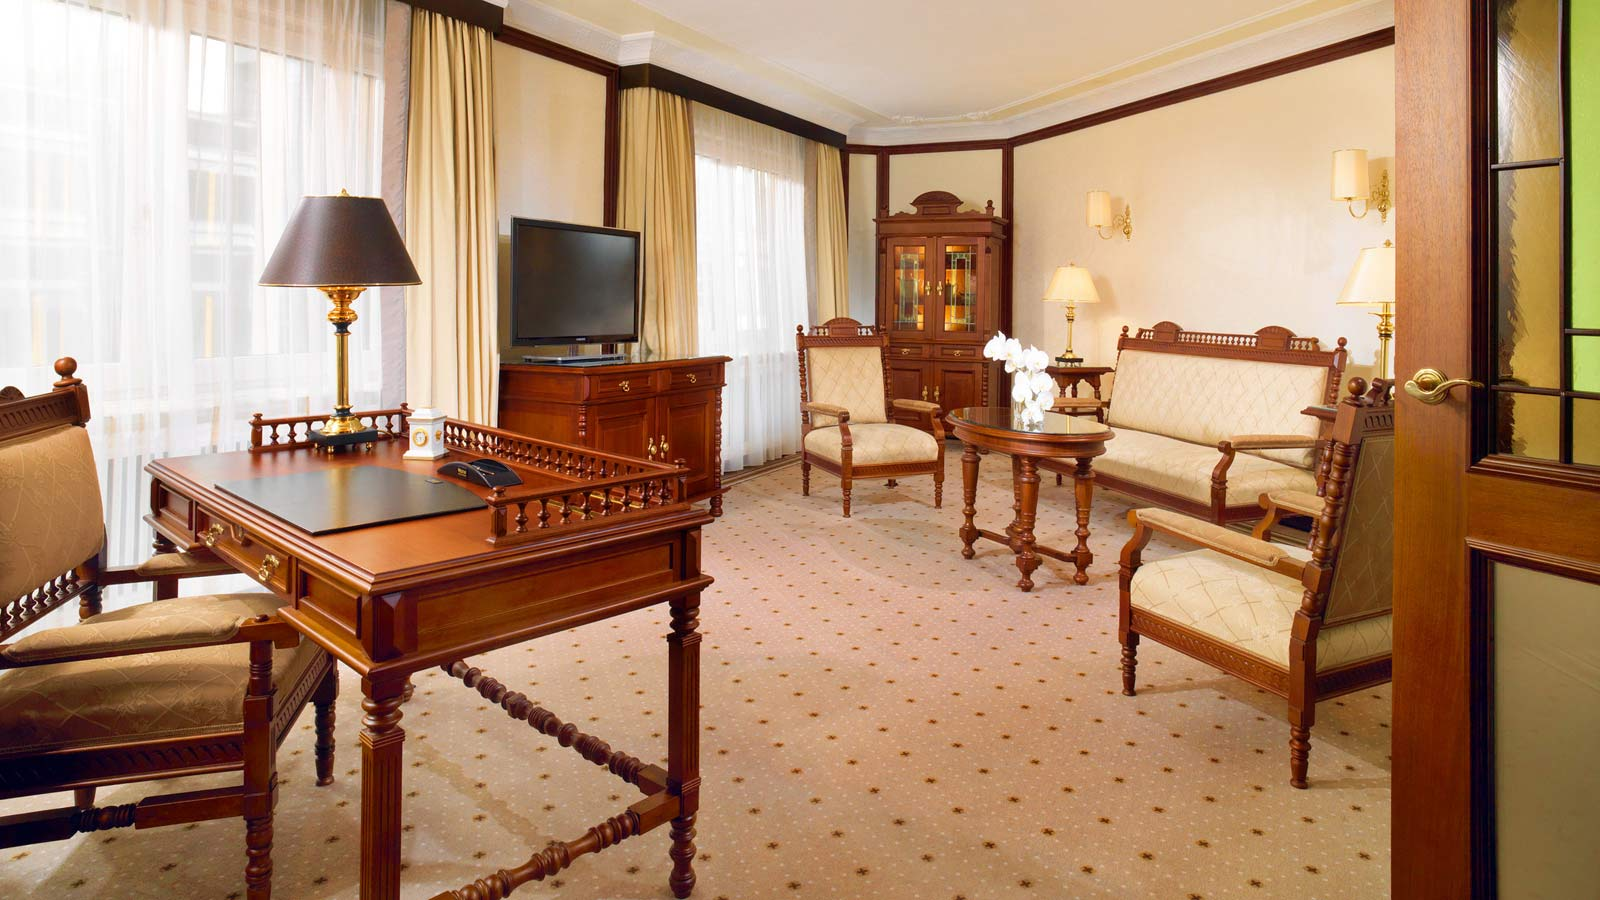 Themen Suite Fontane im The Westin Grand Hotel Berlin